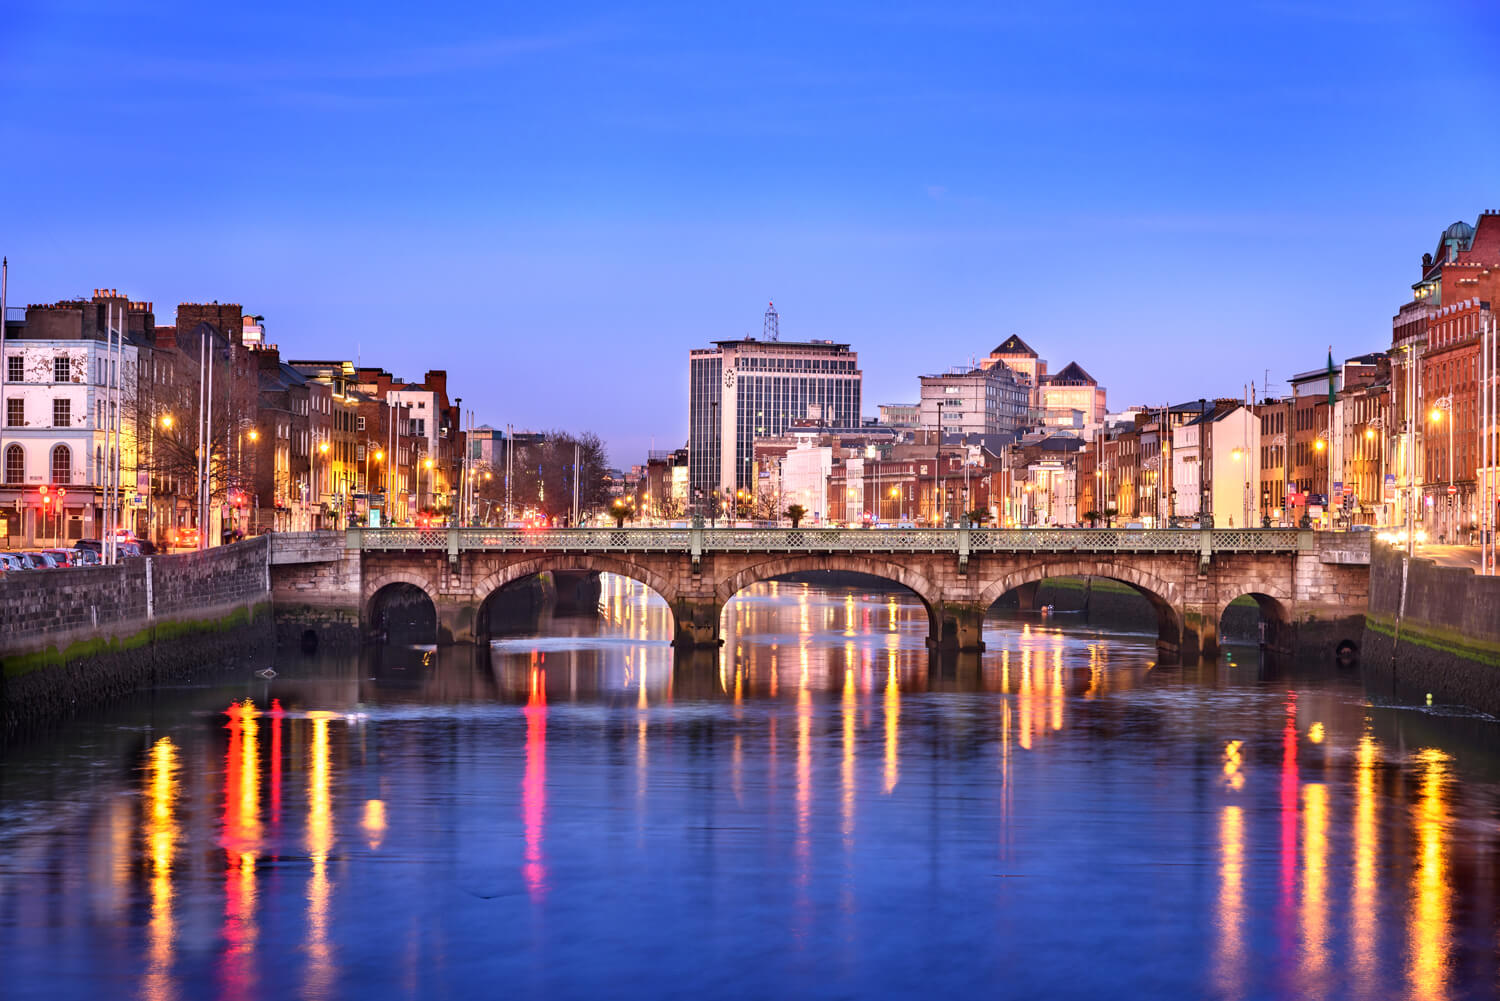 River Liffey flowing under a bridge, with the street lights reflecting on the water